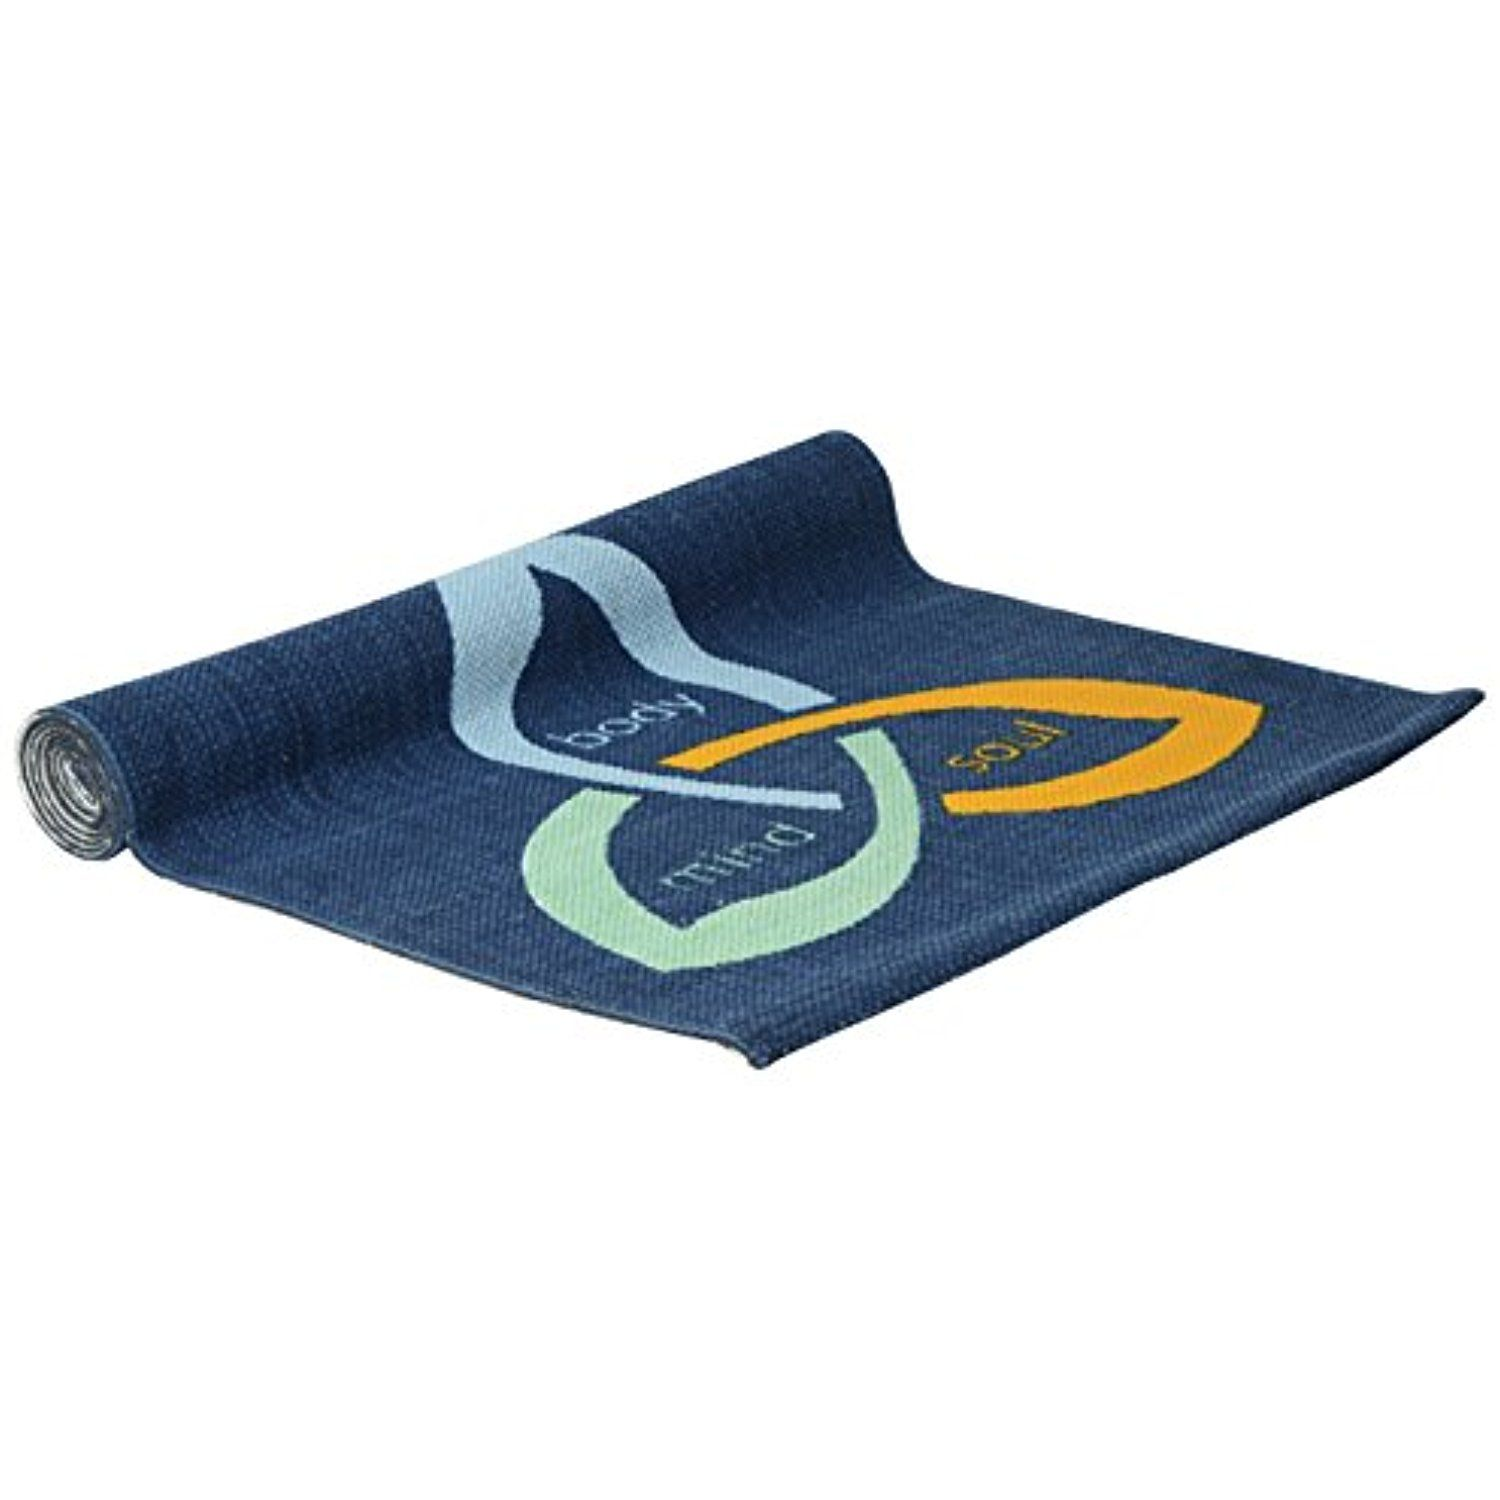 bag and eco extra yoga itm lotuscrafts room pune mat accessories for large cotton organic friendly mats